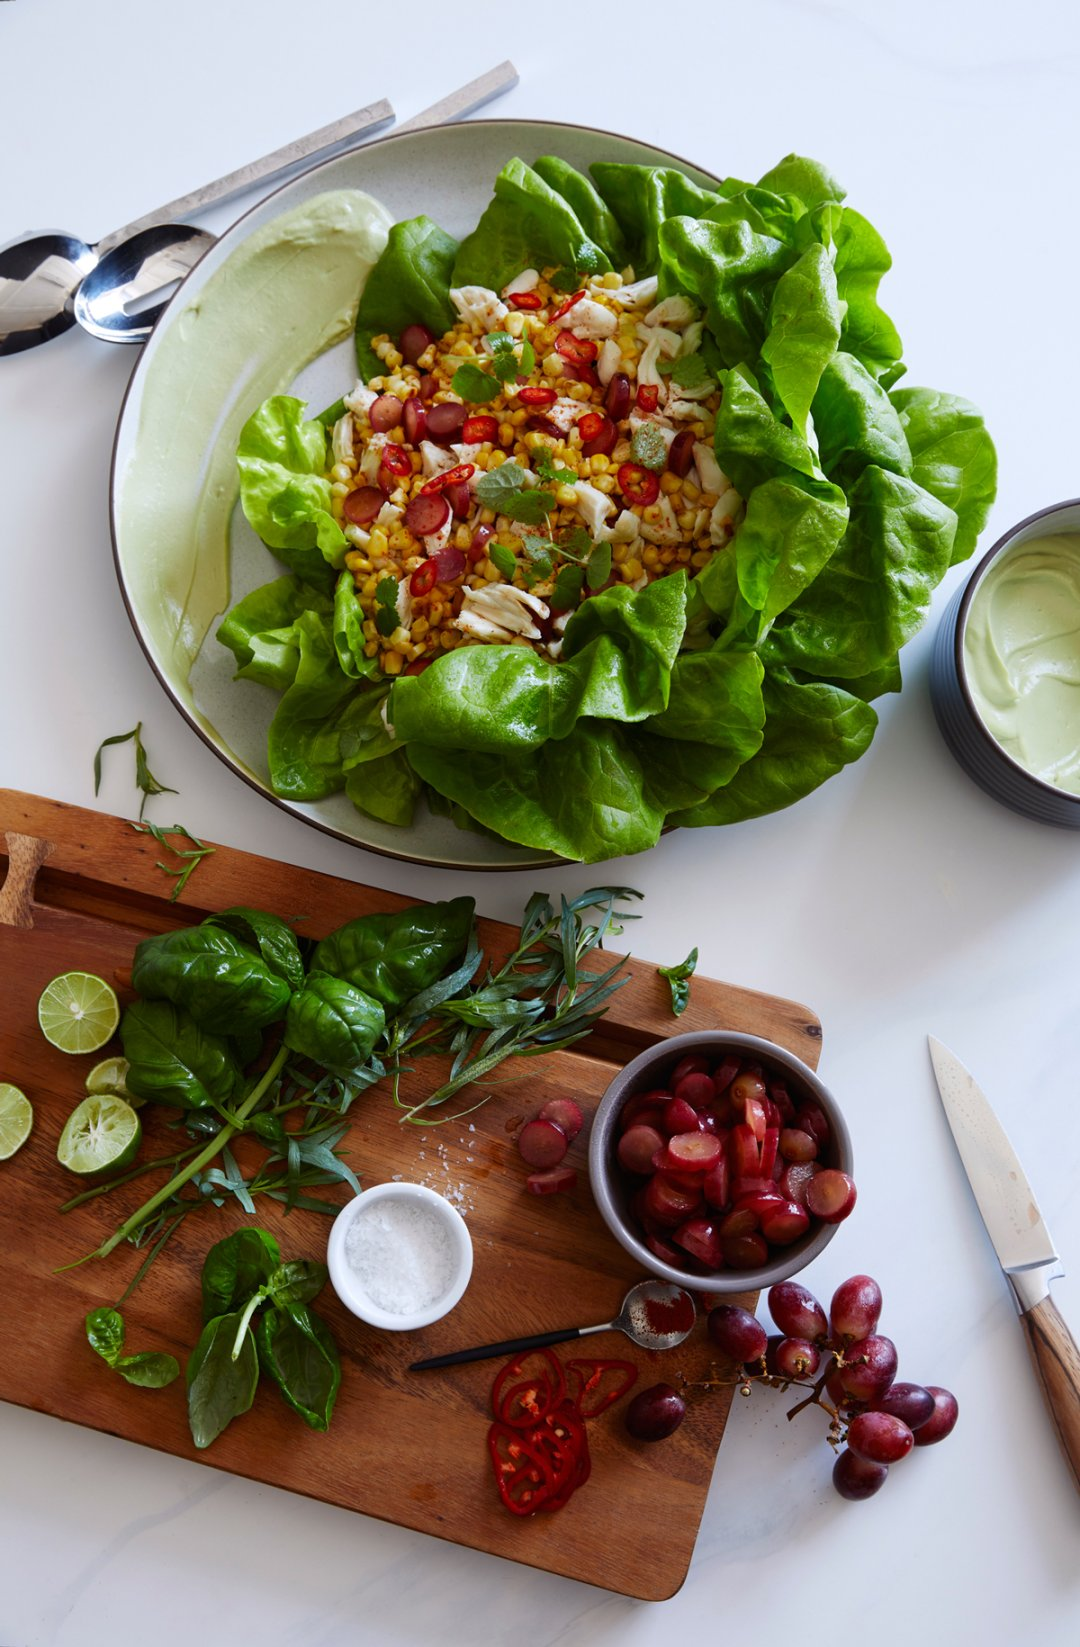 Crab and corn salad in butter lettuce